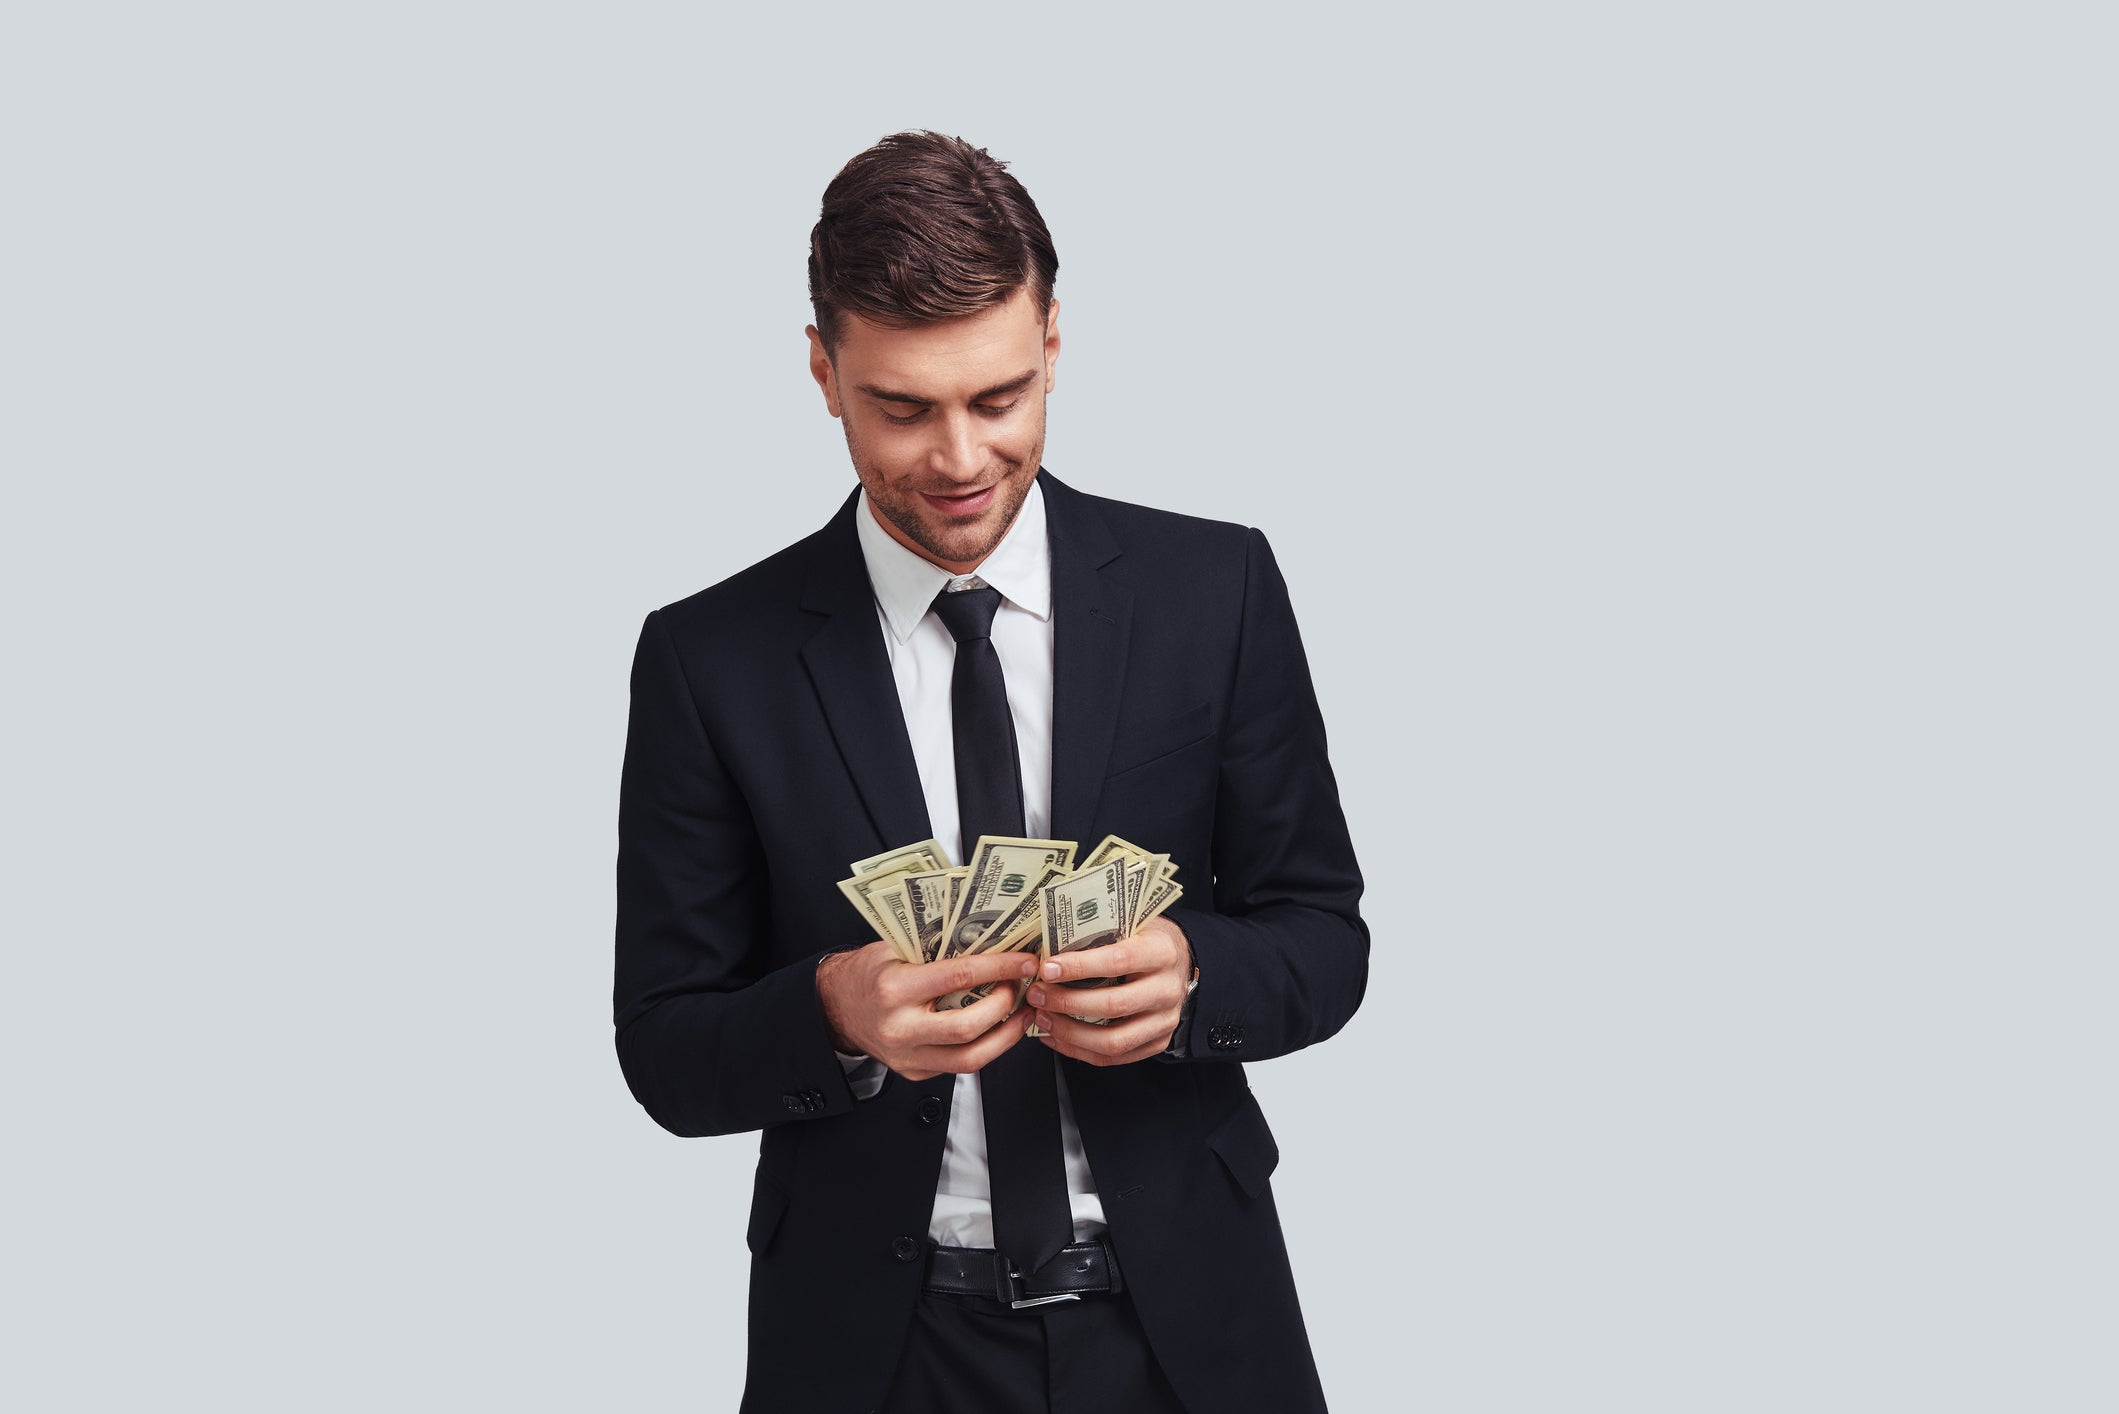 How You Can Become a Millionaire Saving $405 a Month